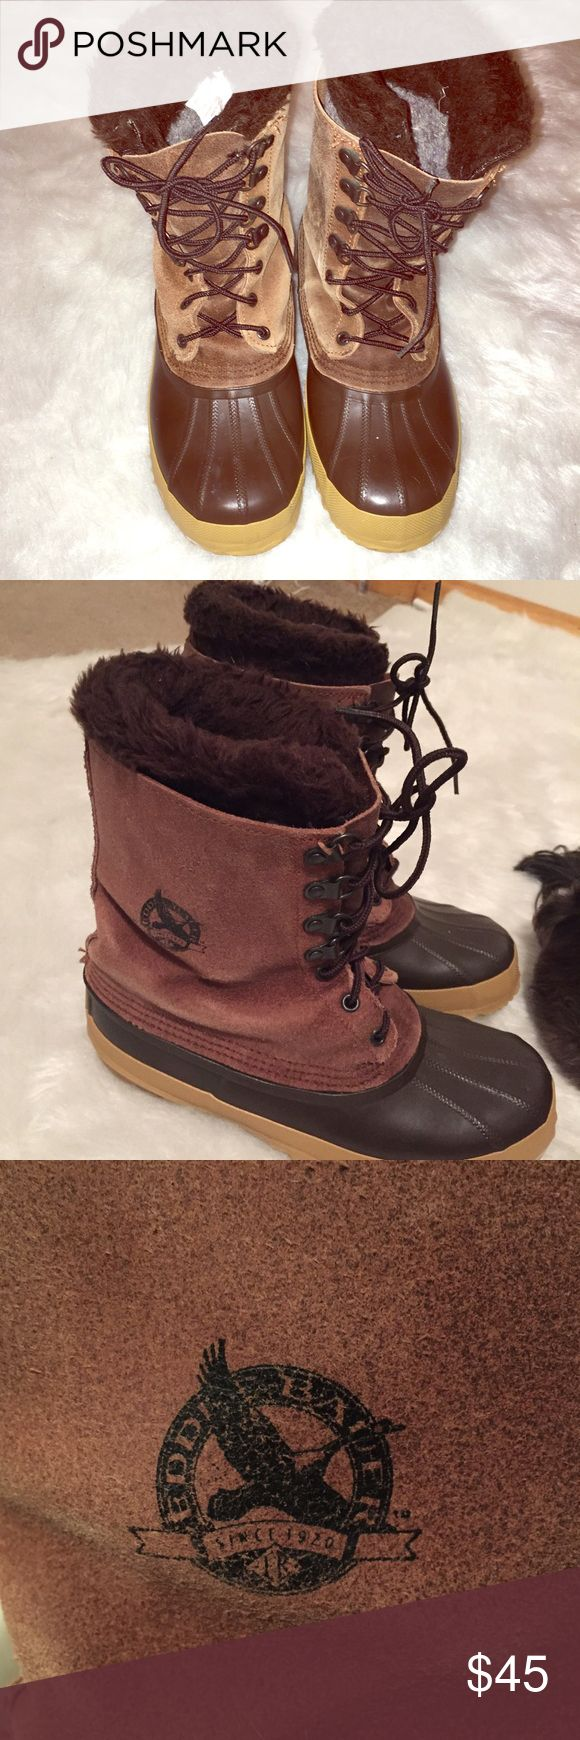 🚨Clearance sale🚨Eddie Bauer Women duck boots 8 Women's Eddie Bauer duck boots size 8 used but still have a lot of life left in them Eddie Bauer Shoes Combat & Moto Boots